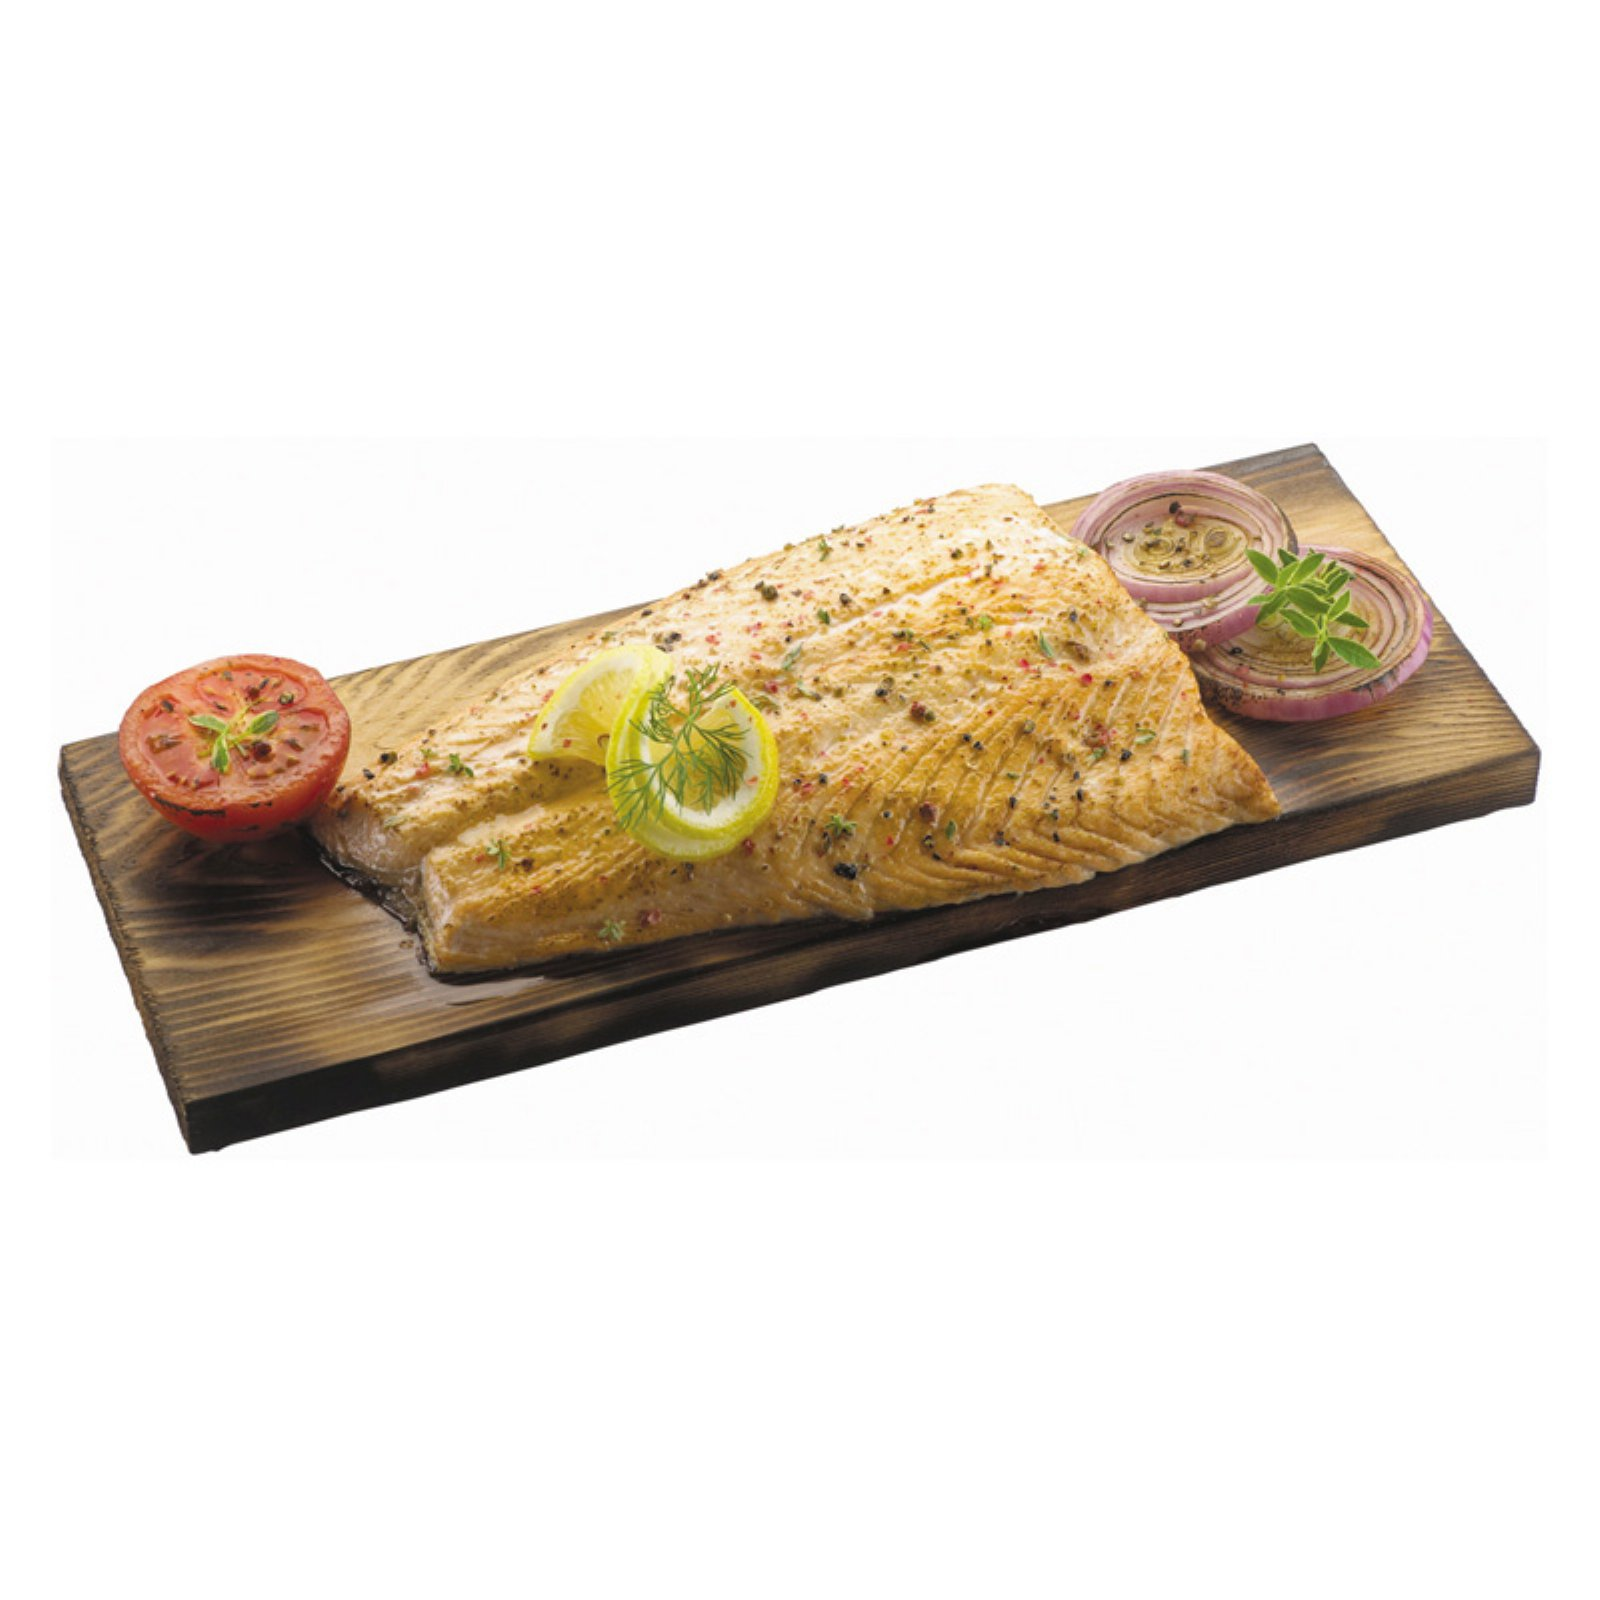 Onward Grill Pro 00280 Cedar Grilling Planks 2 Count